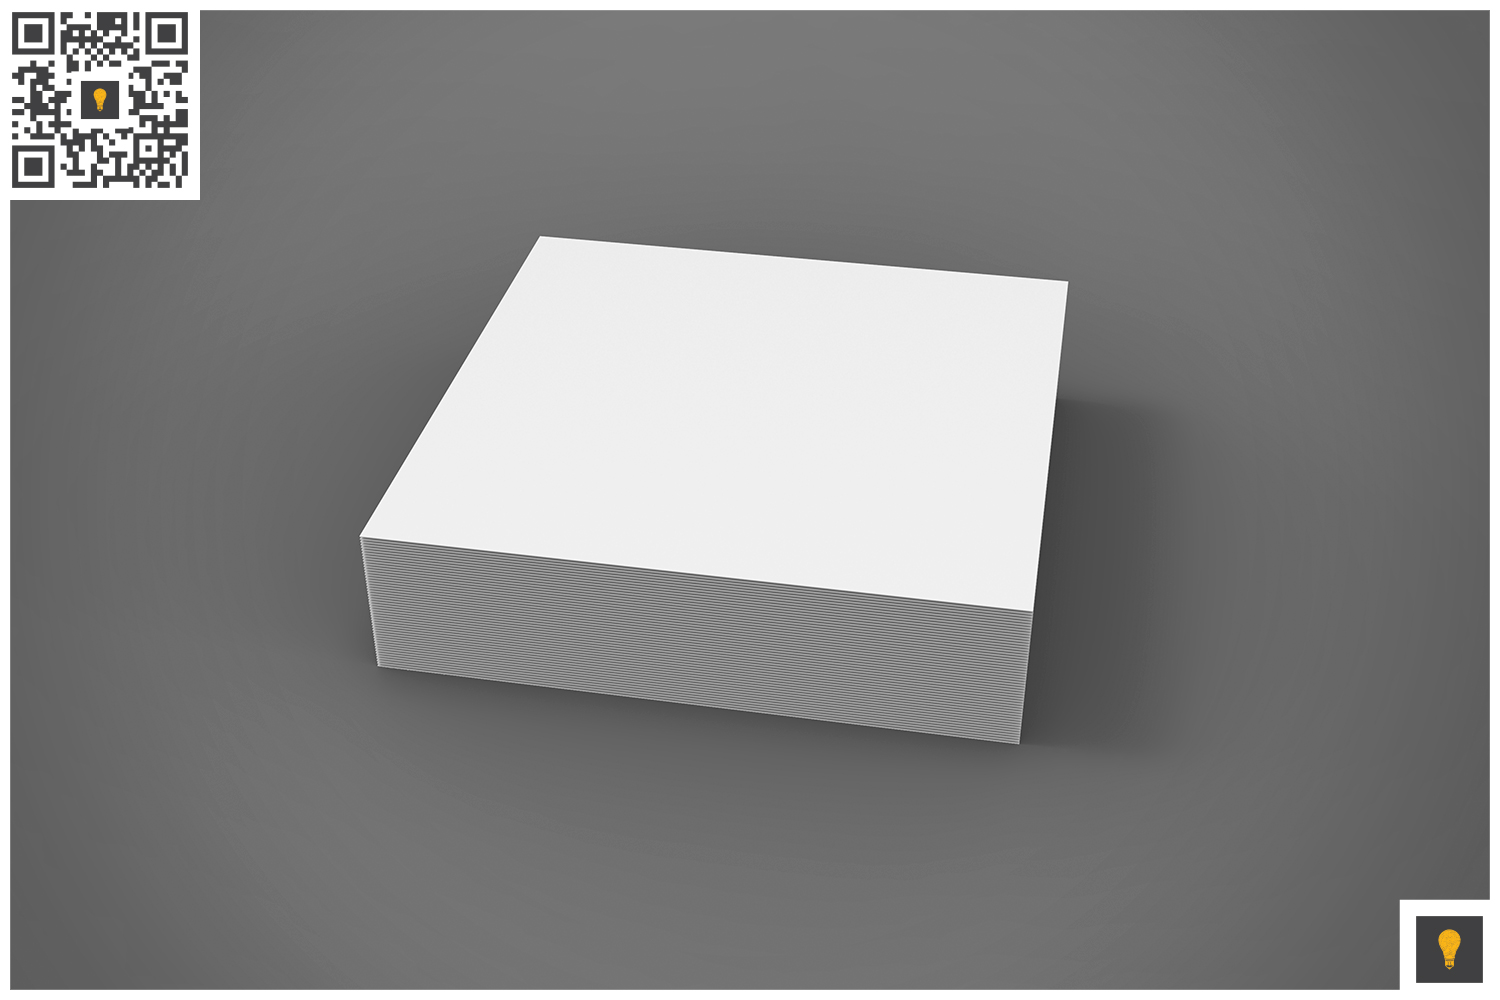 Branding Stationary 3D Render example image 12